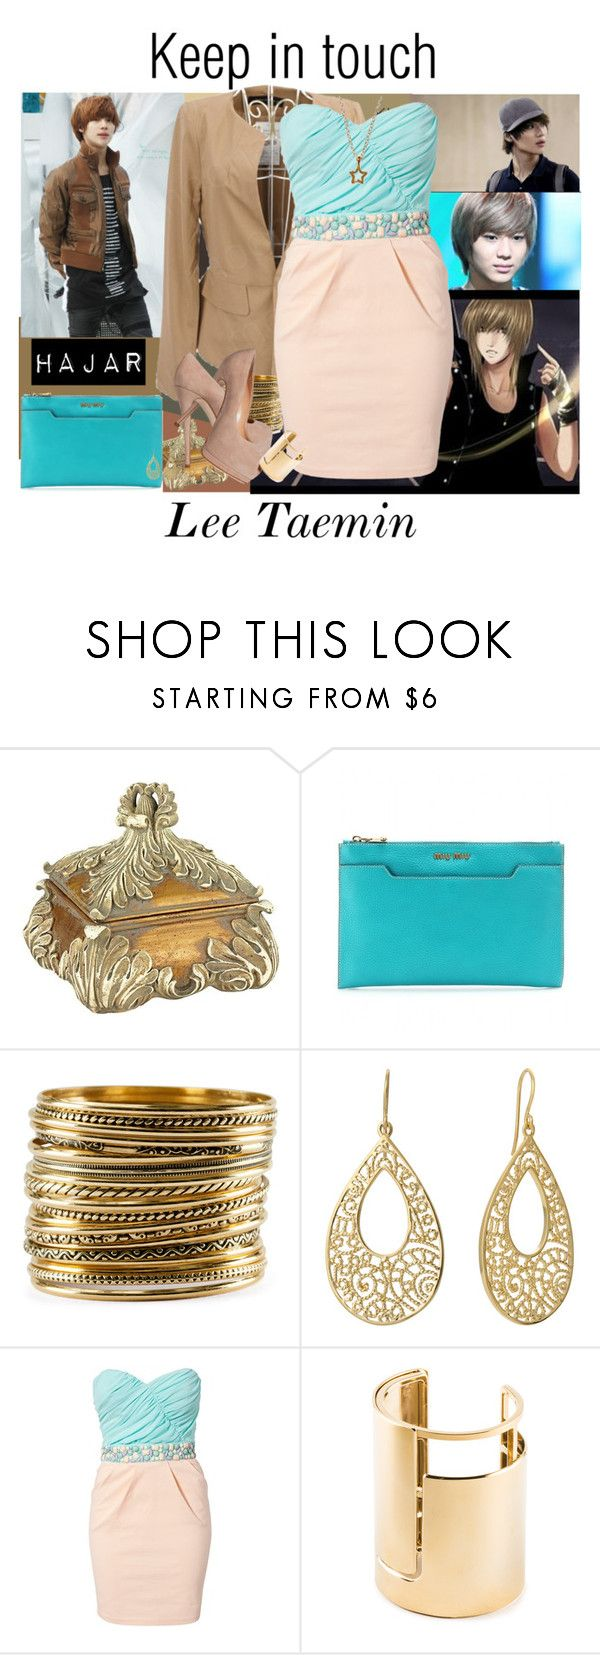 """""""Keep in touch"""" by enigmaticma ❤ liked on Polyvore featuring Miu Miu, H&M, Giuseppe Zanotti, Isharya, Elise Ryan, Lanvin and Gorjana"""